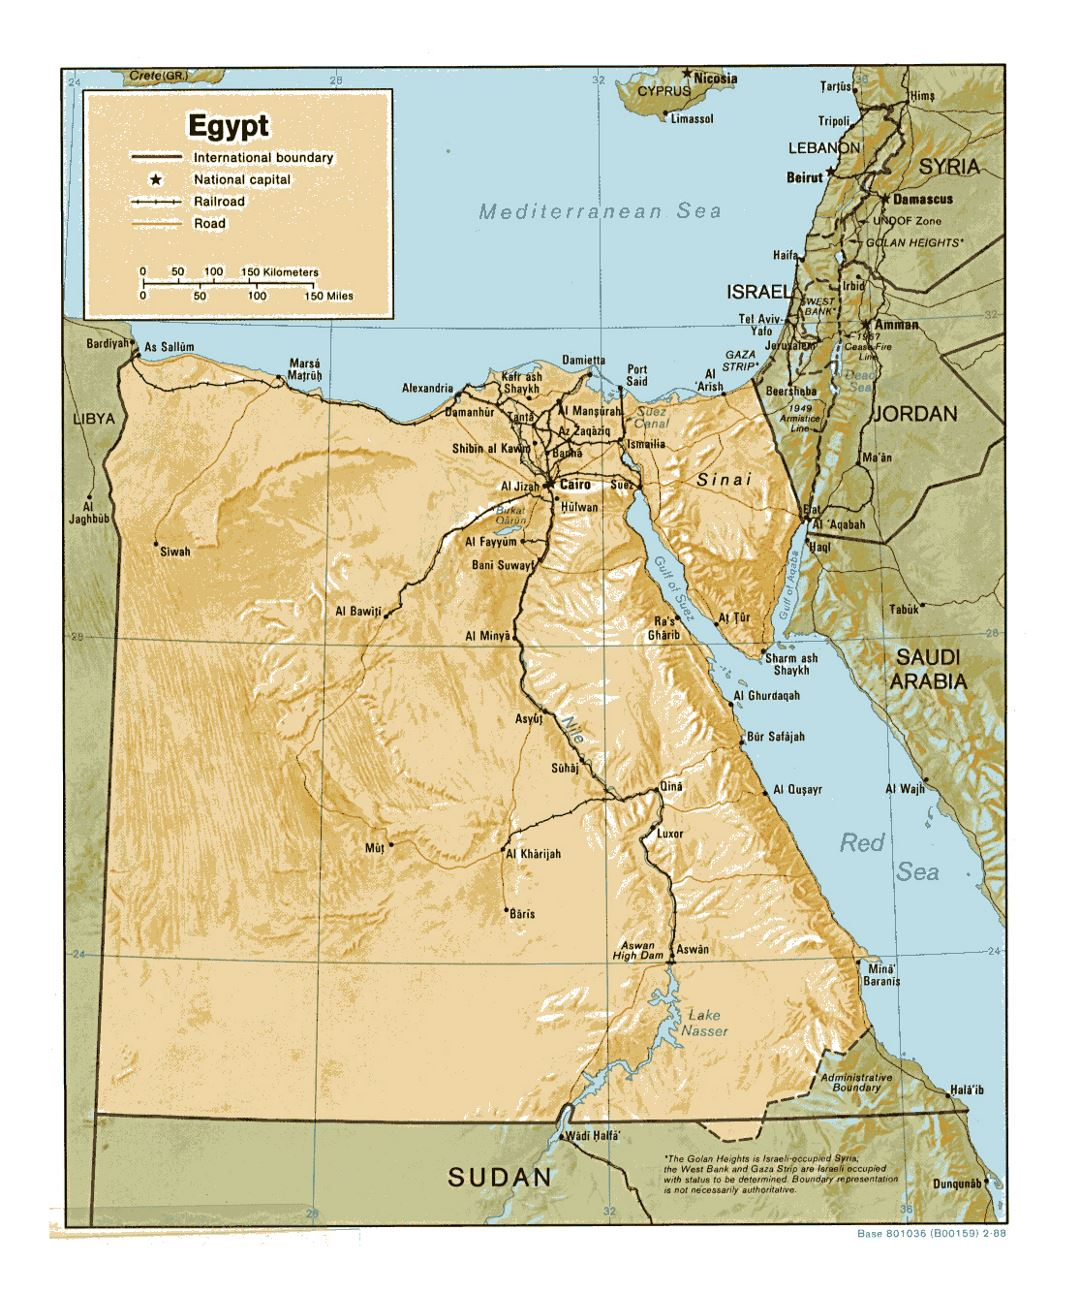 Detailed political map of Egypt with relief, roads, railroads and major cities - 1988